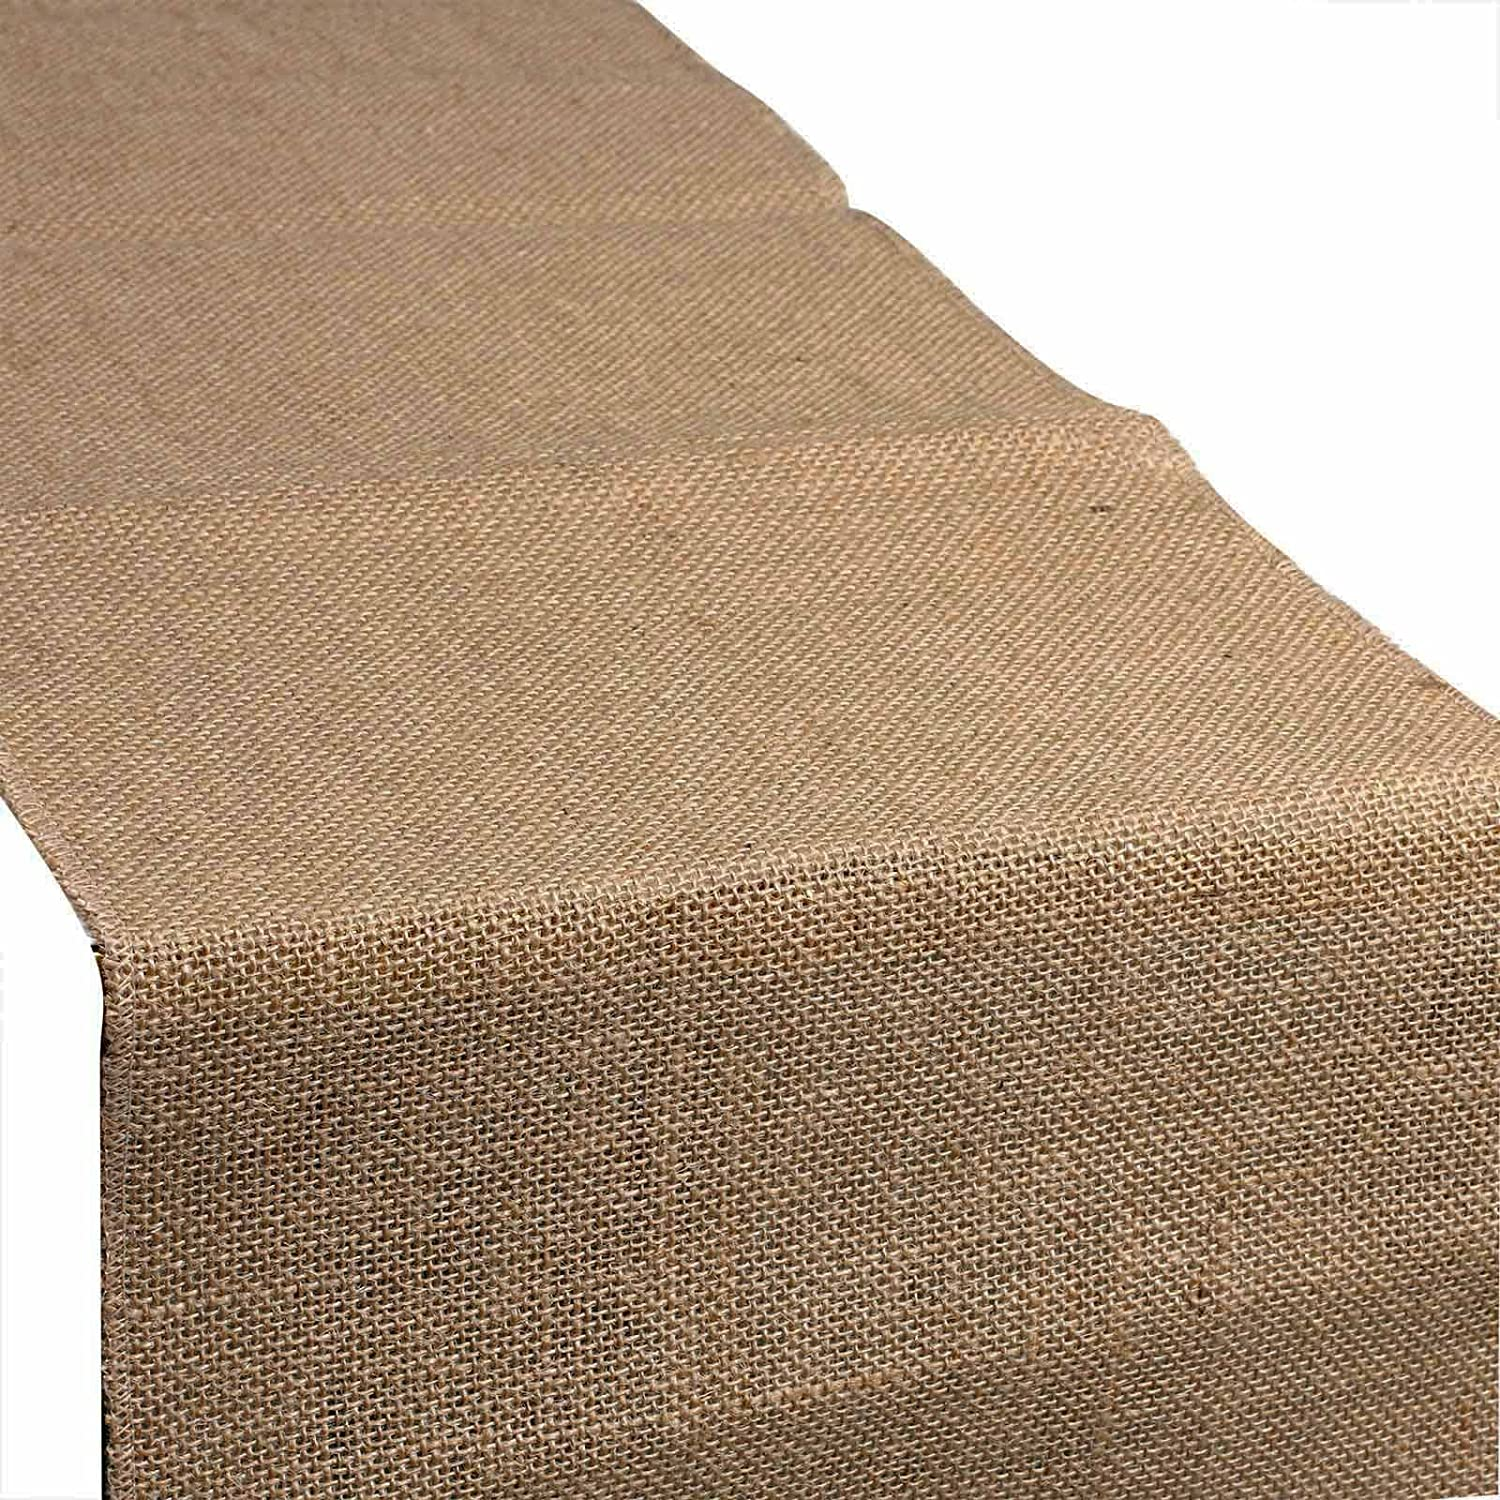 vLoveLife 12x108 Natural Burlap Table Runner Hessian Jute Rustic Vintage Cloth Wedding Party Baby Shower Events Table Decor